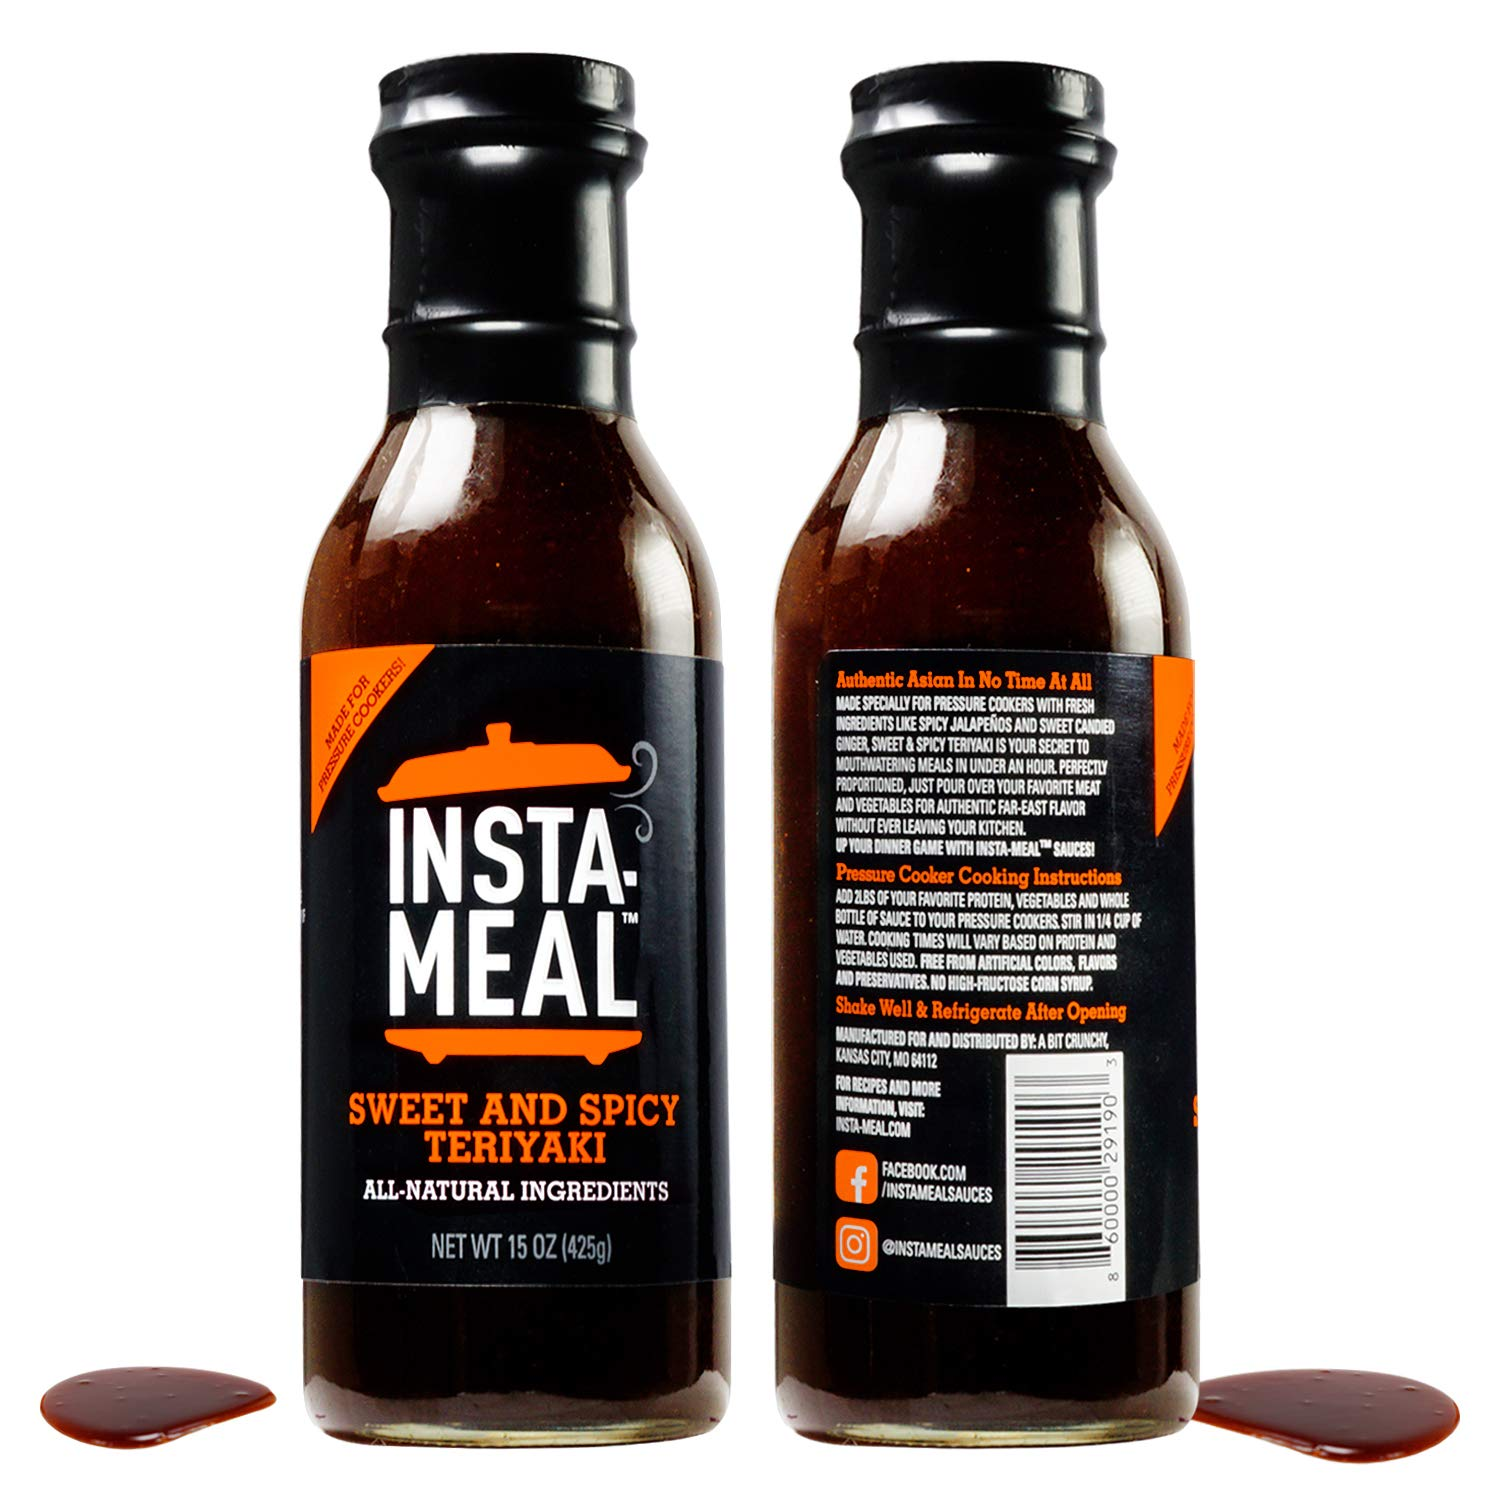 Insta-Meal Instant Pot Compatible Sauce, Sweet & Spicy Teriyaki Cooking Starter - Fast & Easy Recipes for Beginners & Beyond   Fresh and Healthy, No Prep Asian, One-Pot Pressure or Slow Cooker Meals